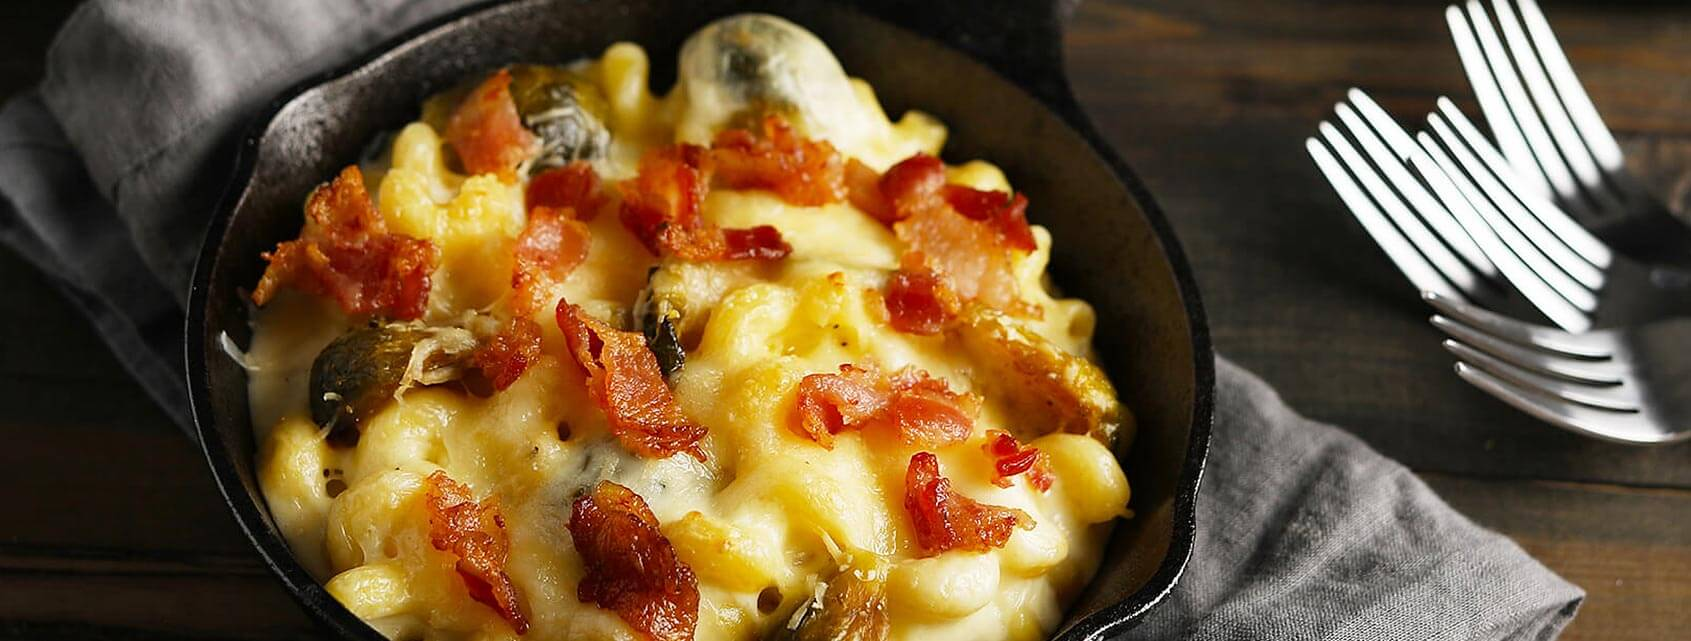 brussels-bacon-gourmet-mac-and-cheese.jpg